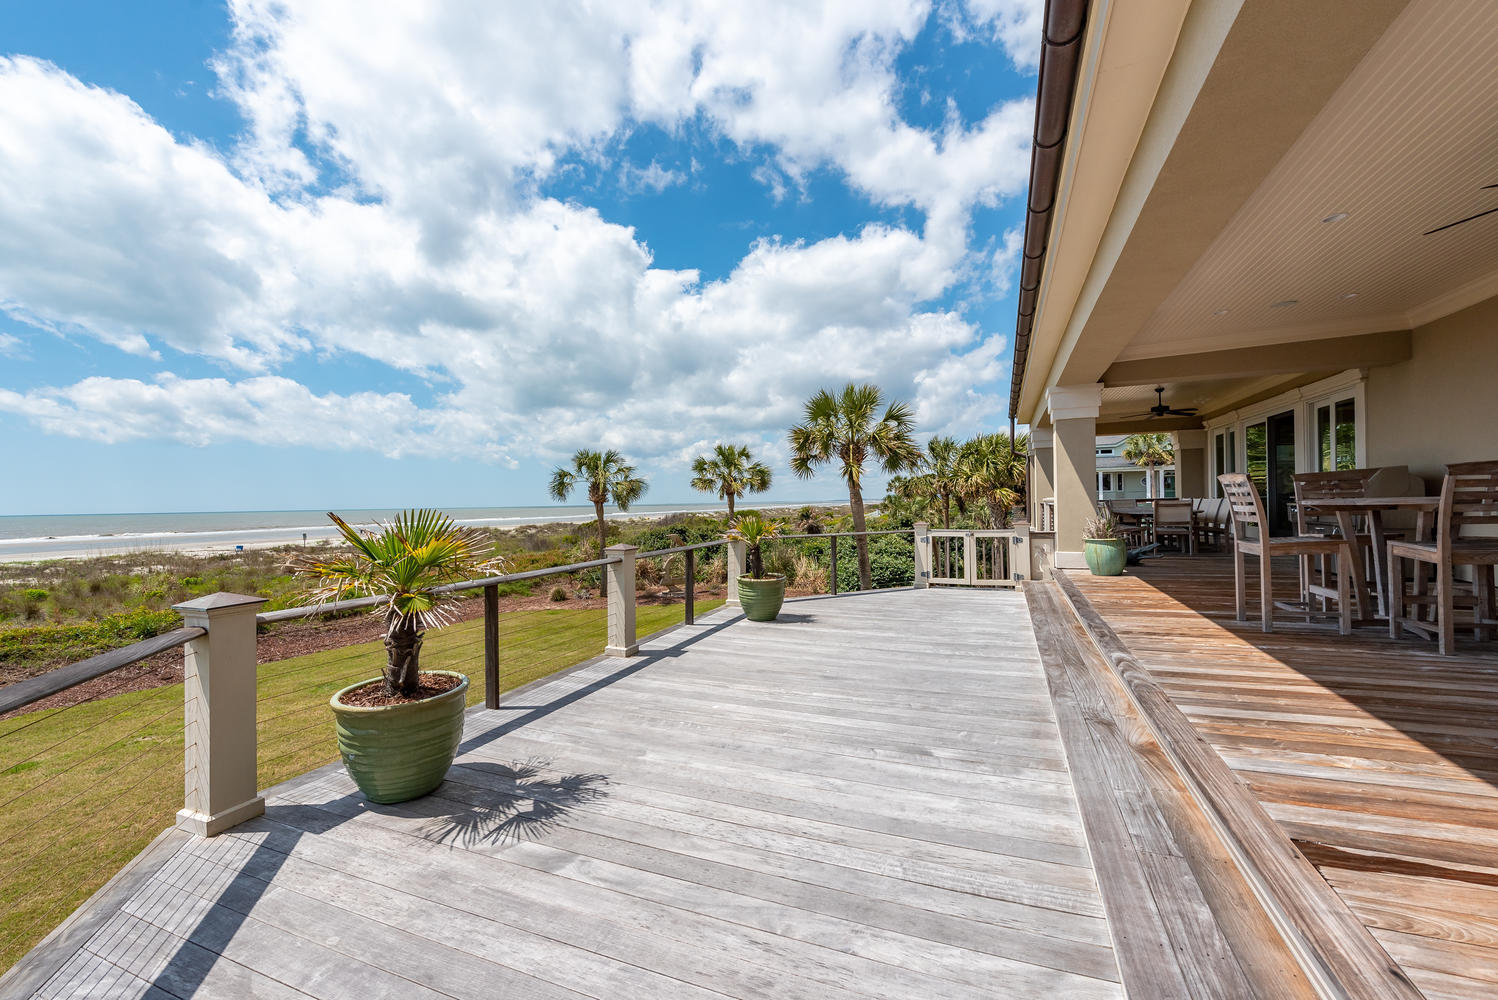 Isle of Palms Homes For Sale - 2 50th, Isle of Palms, SC - 31